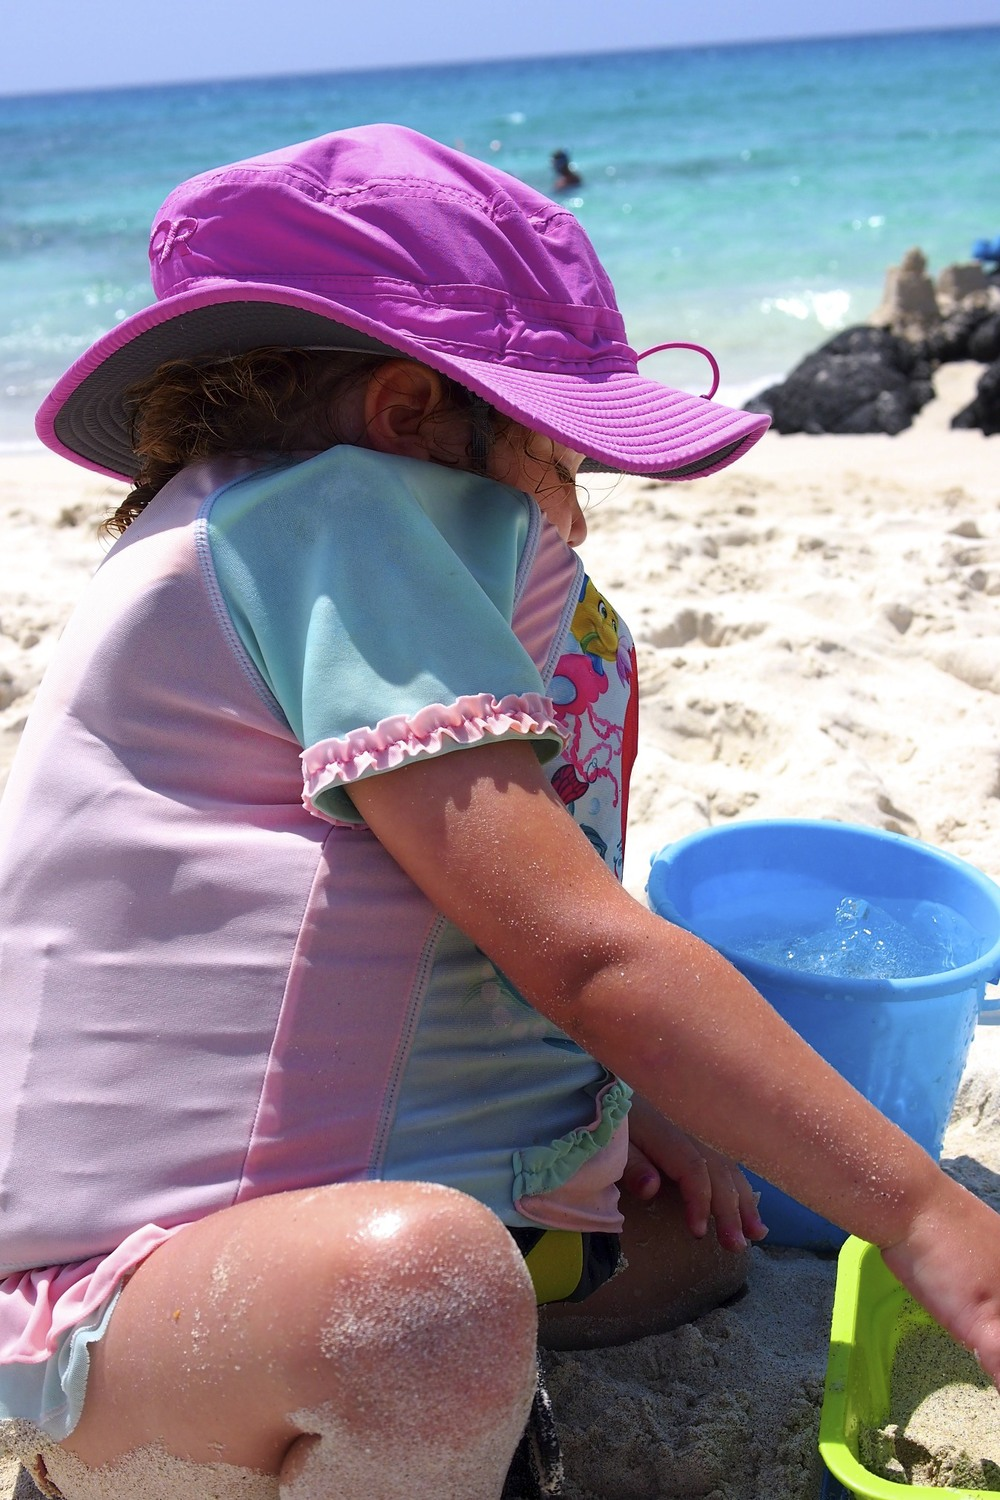 Meanwhile, Maren looked like this. Can you find her in there in between her life vest, sun shirt and hat?